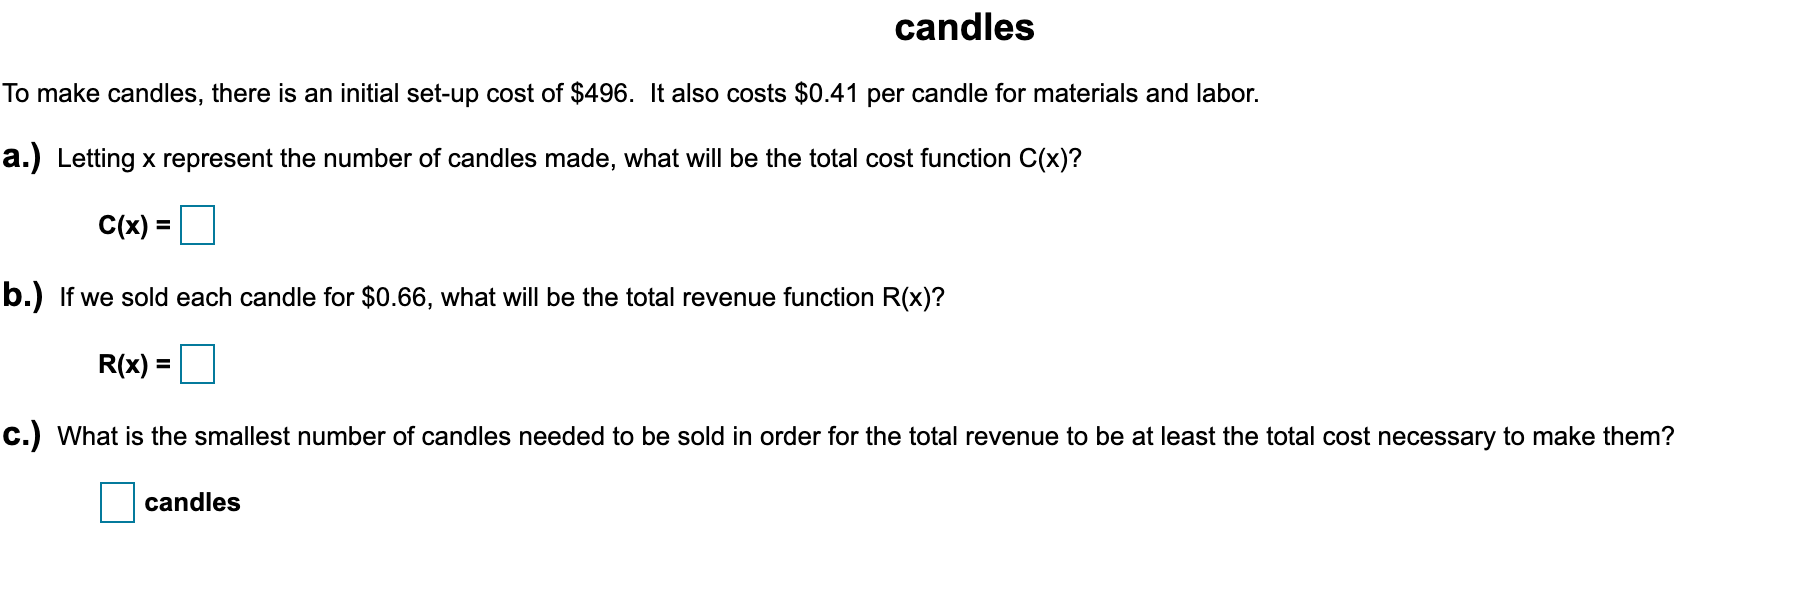 candles To make candles, there is an initial set-up cost of $496. It also costs $0.41 per candle for materials and labor. a.) Letting x represent the number of candles made, what will be the total cost function C(x)? C(x) = %3D b.) If we sold each candle for $0.66, what will be the total revenue function R(x)? R(x) = c.) What is the smallest number of candles needed to be sold in order for the total revenue to be at least the total cost necessary to make them? candles